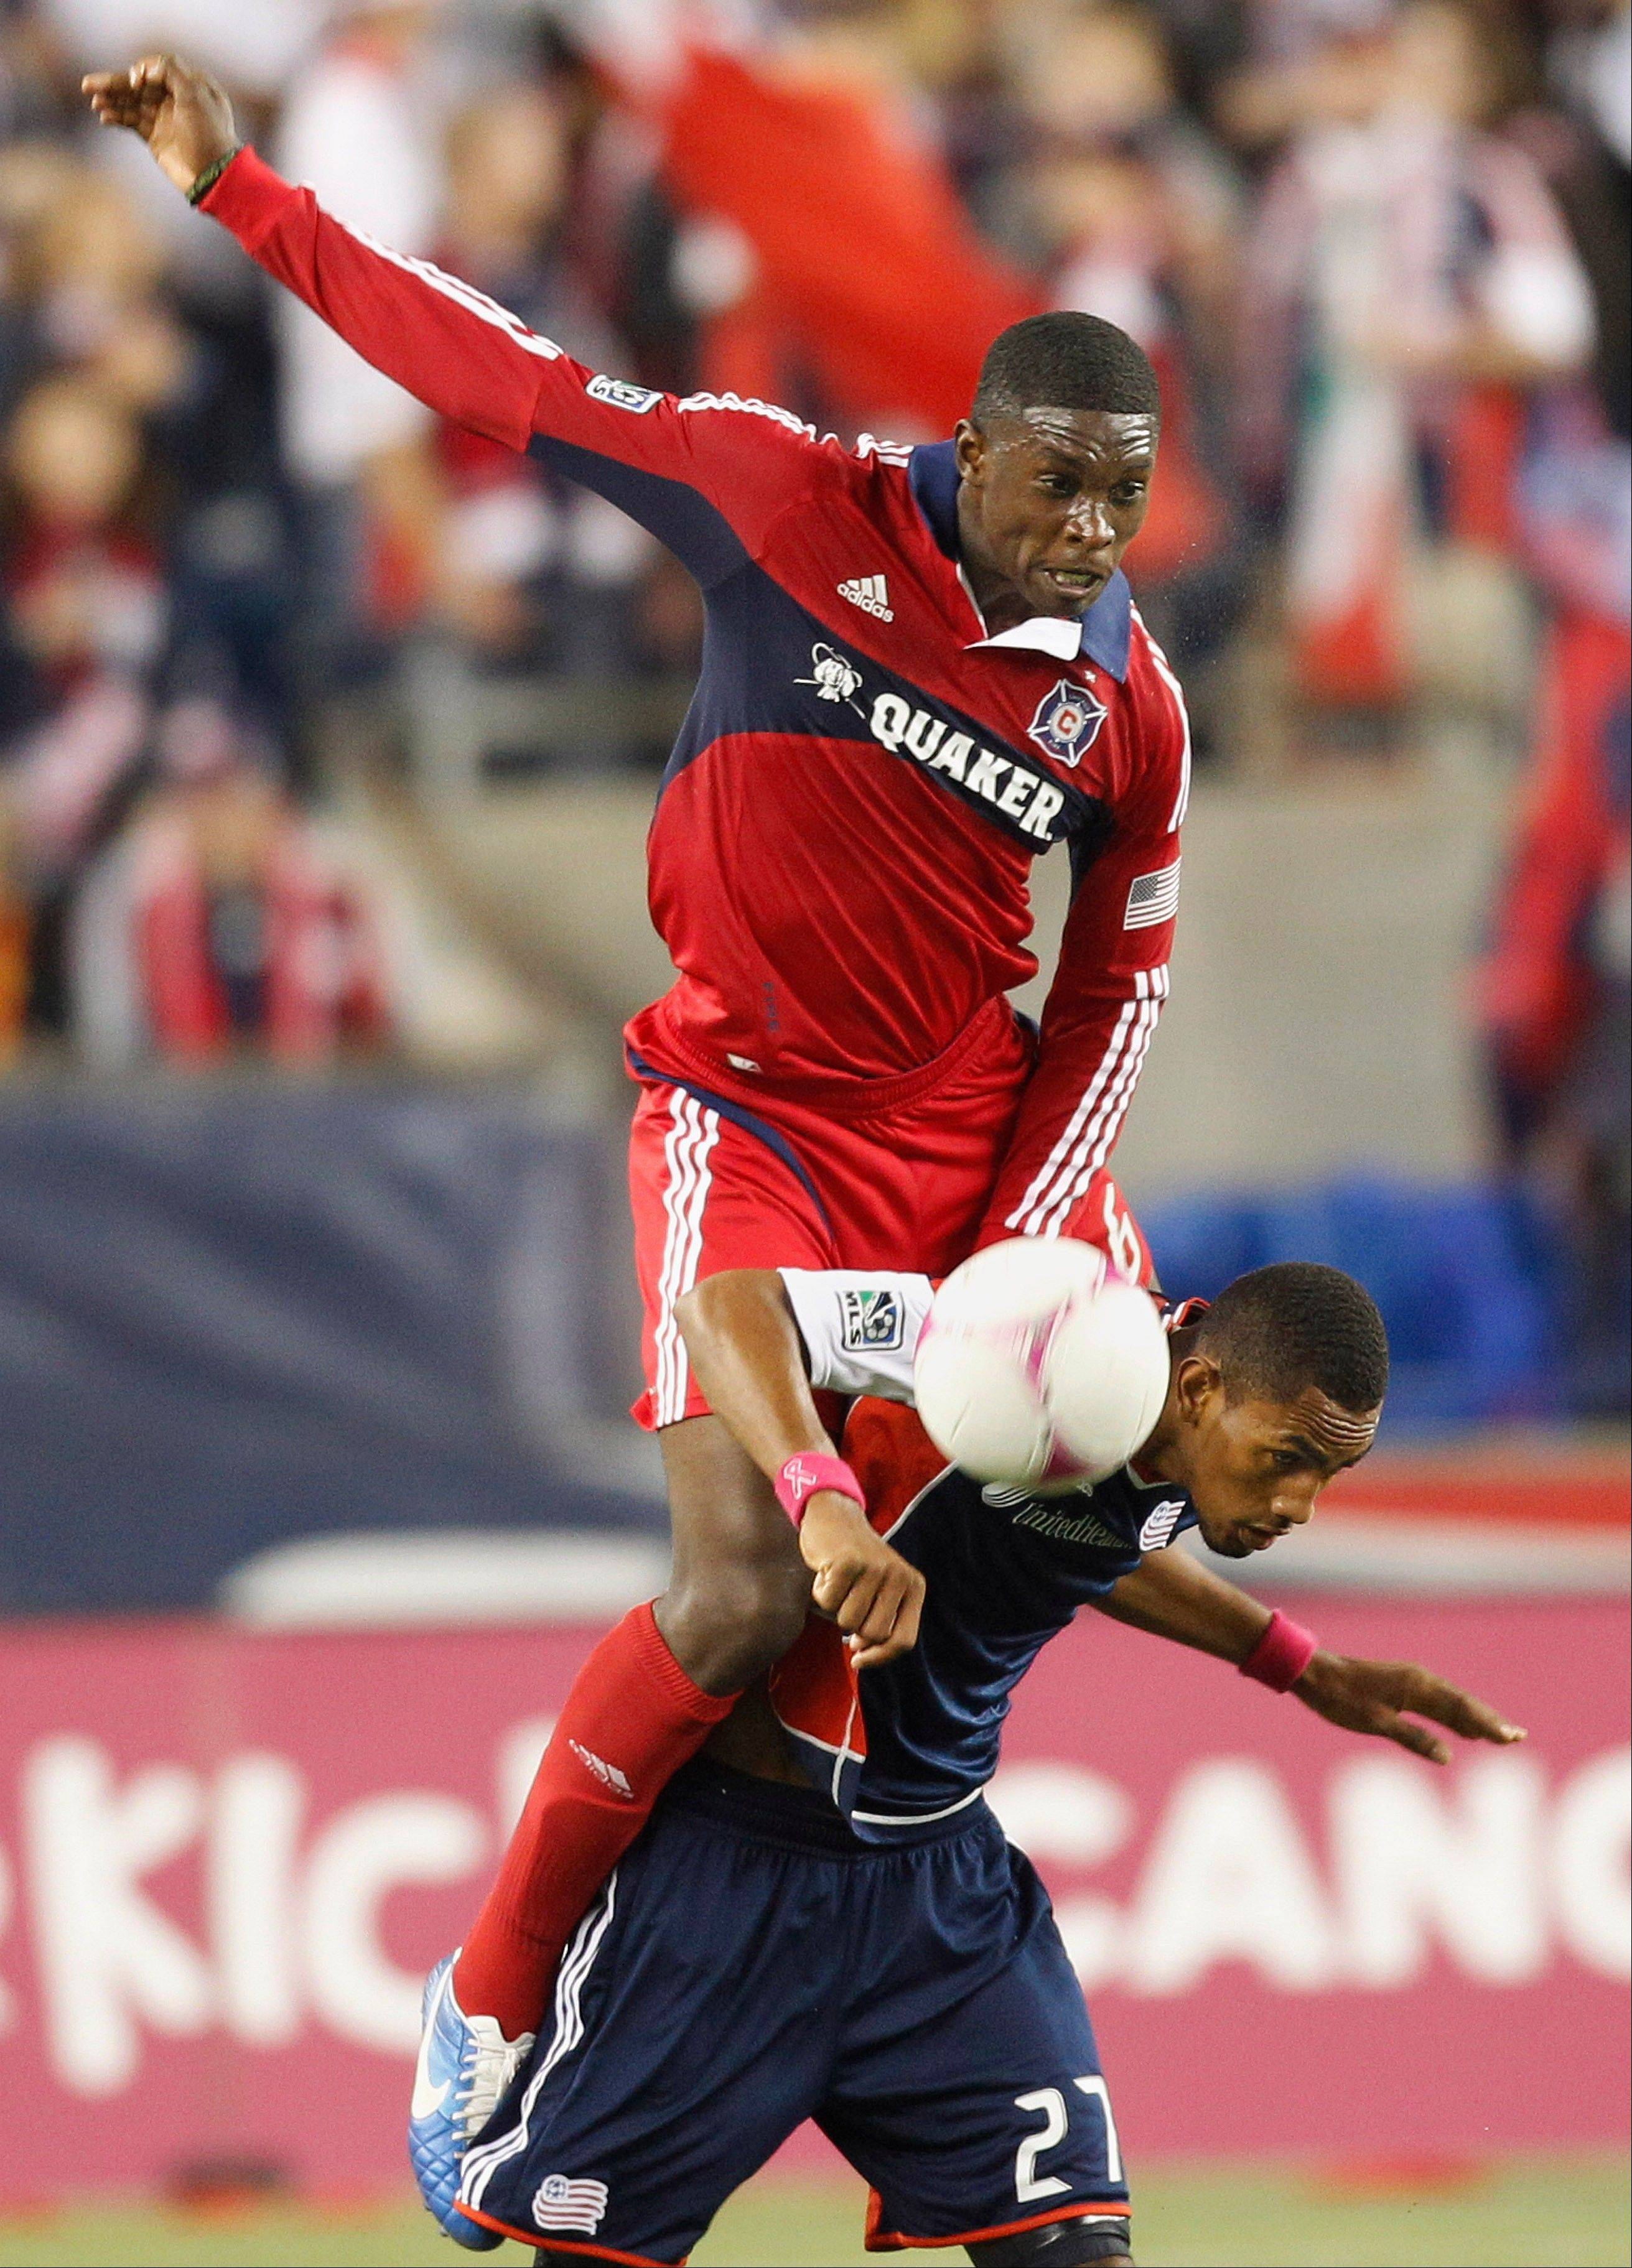 Chicago Fire defender Jalil Anibaba, top, leaps over New England Revolution's Jerry Bengtson (27) in an attempt to get to the ball during their MLS match in Foxborough, Mass., Saturday. New England won 1-0.